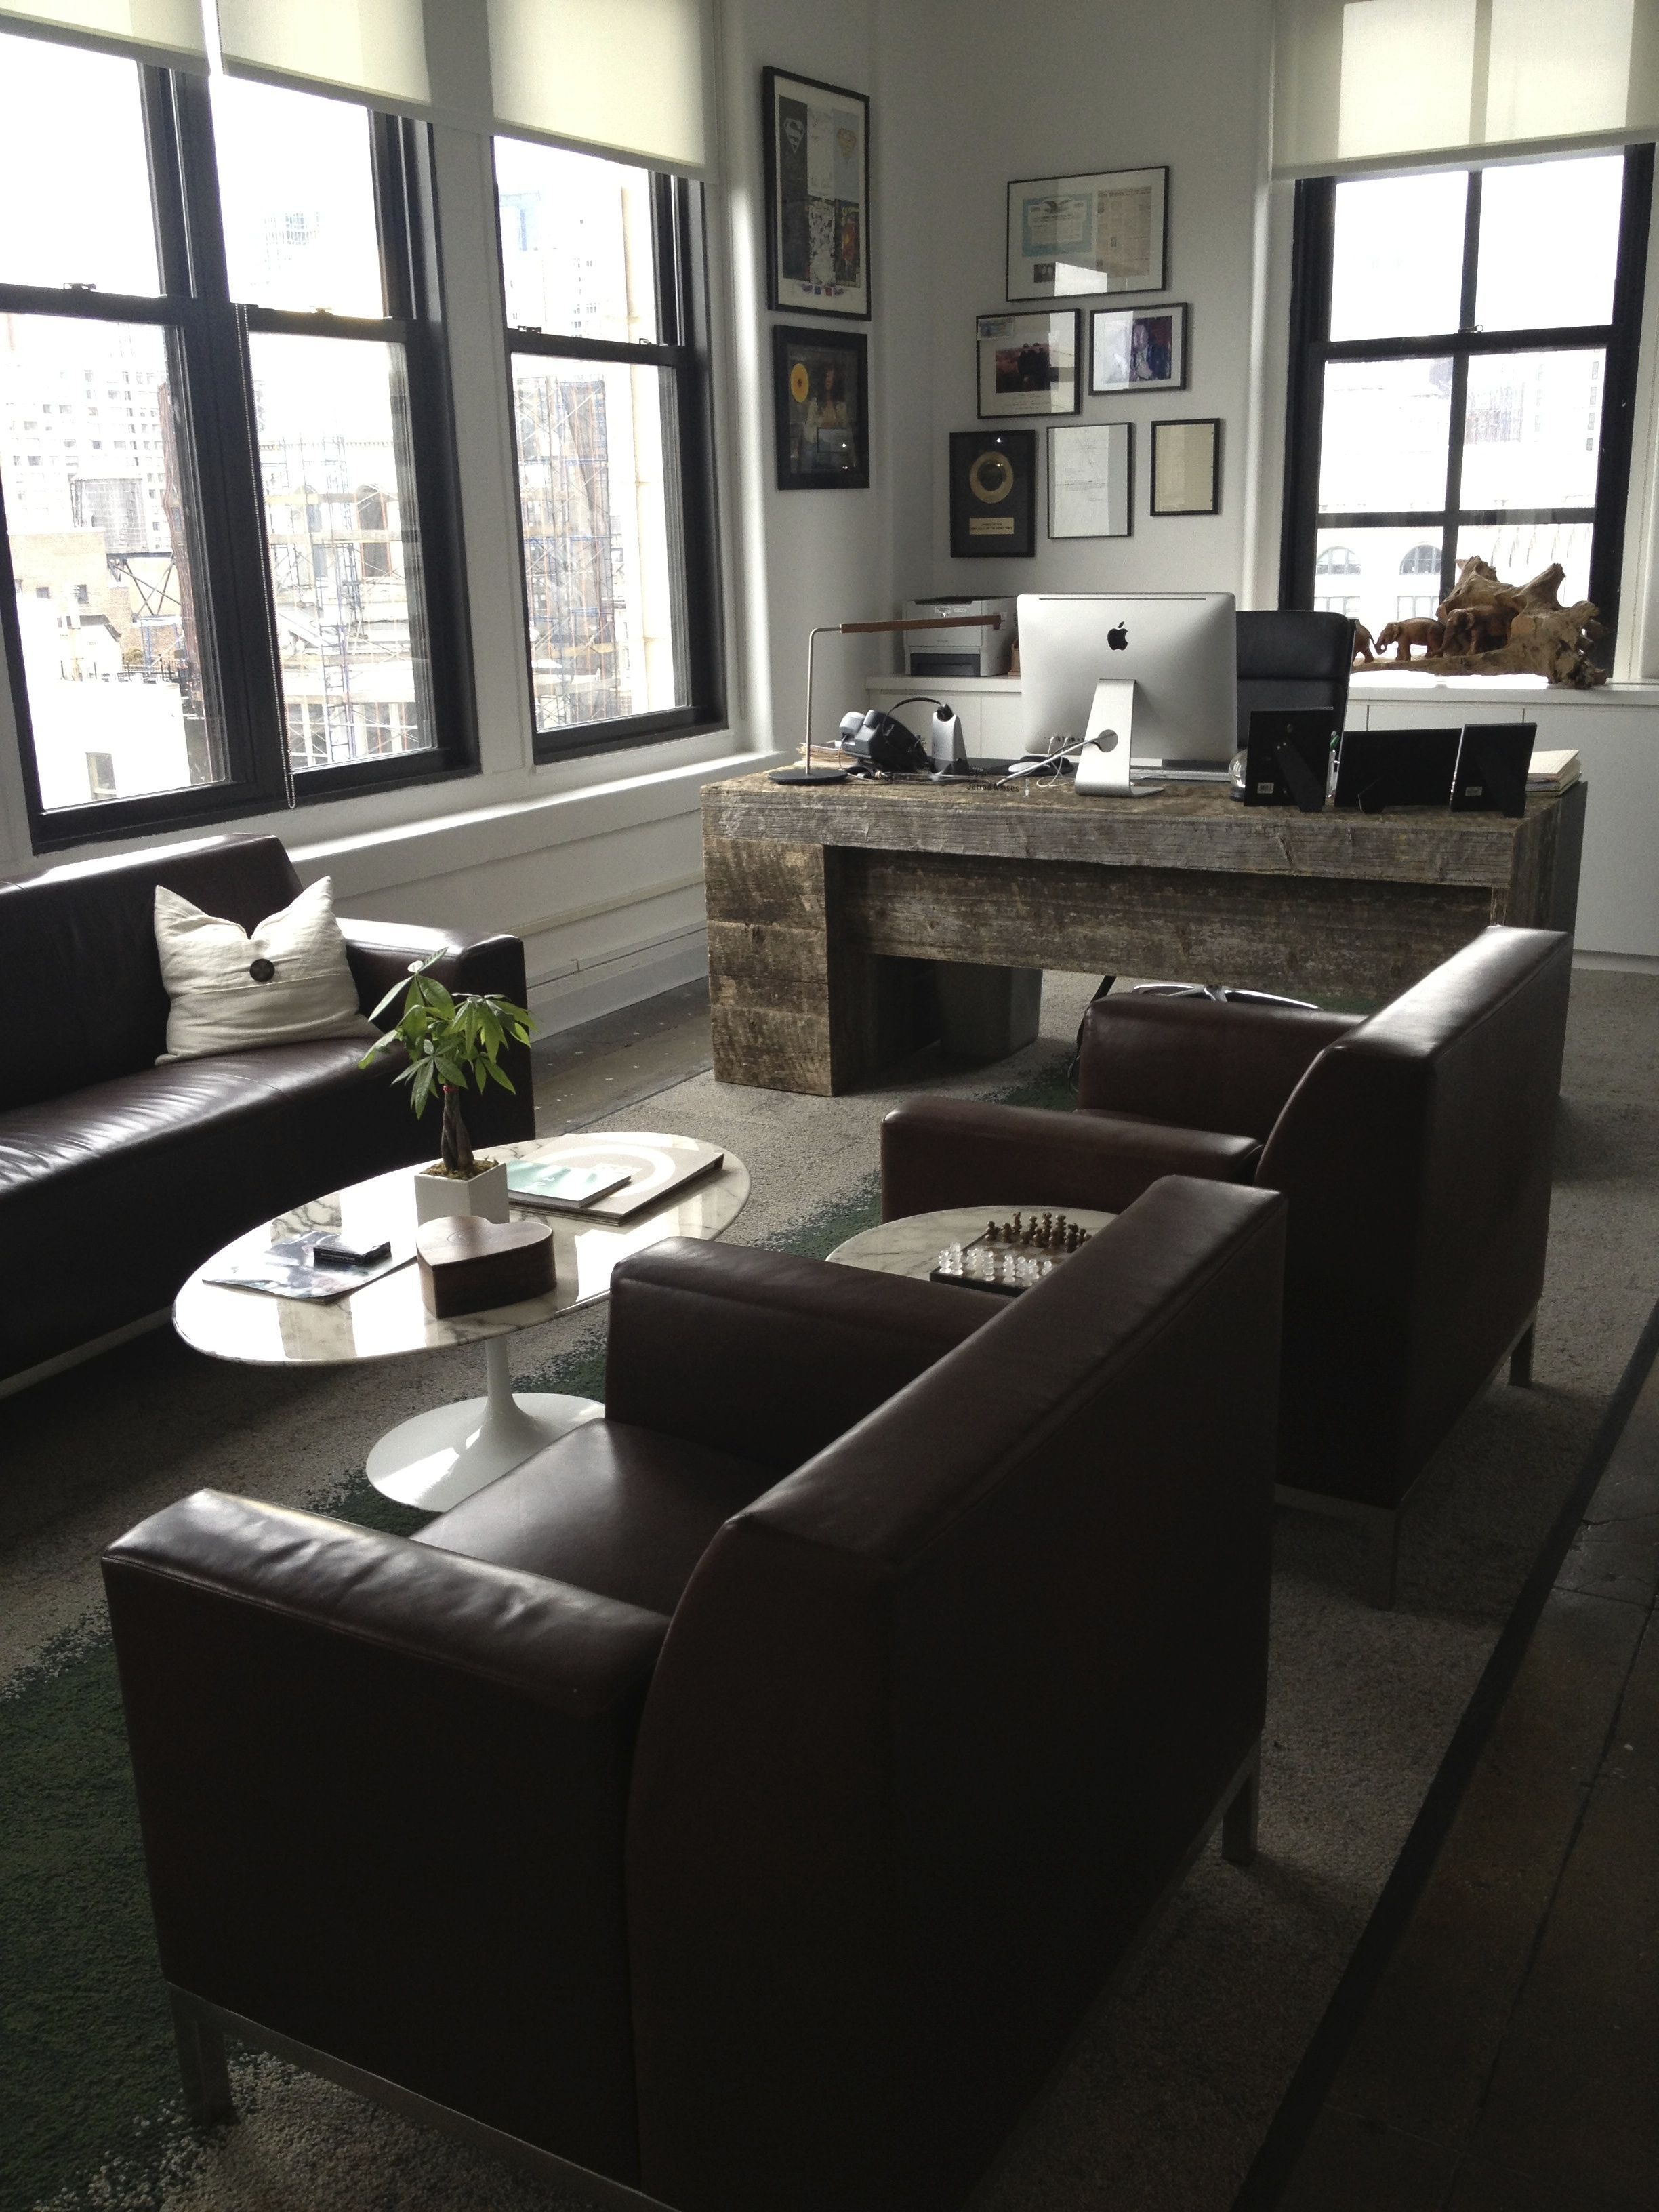 office seating area. Flatiron, NYC - CEO\u0027s Office The Sitting Area Is Nice.|| Seating